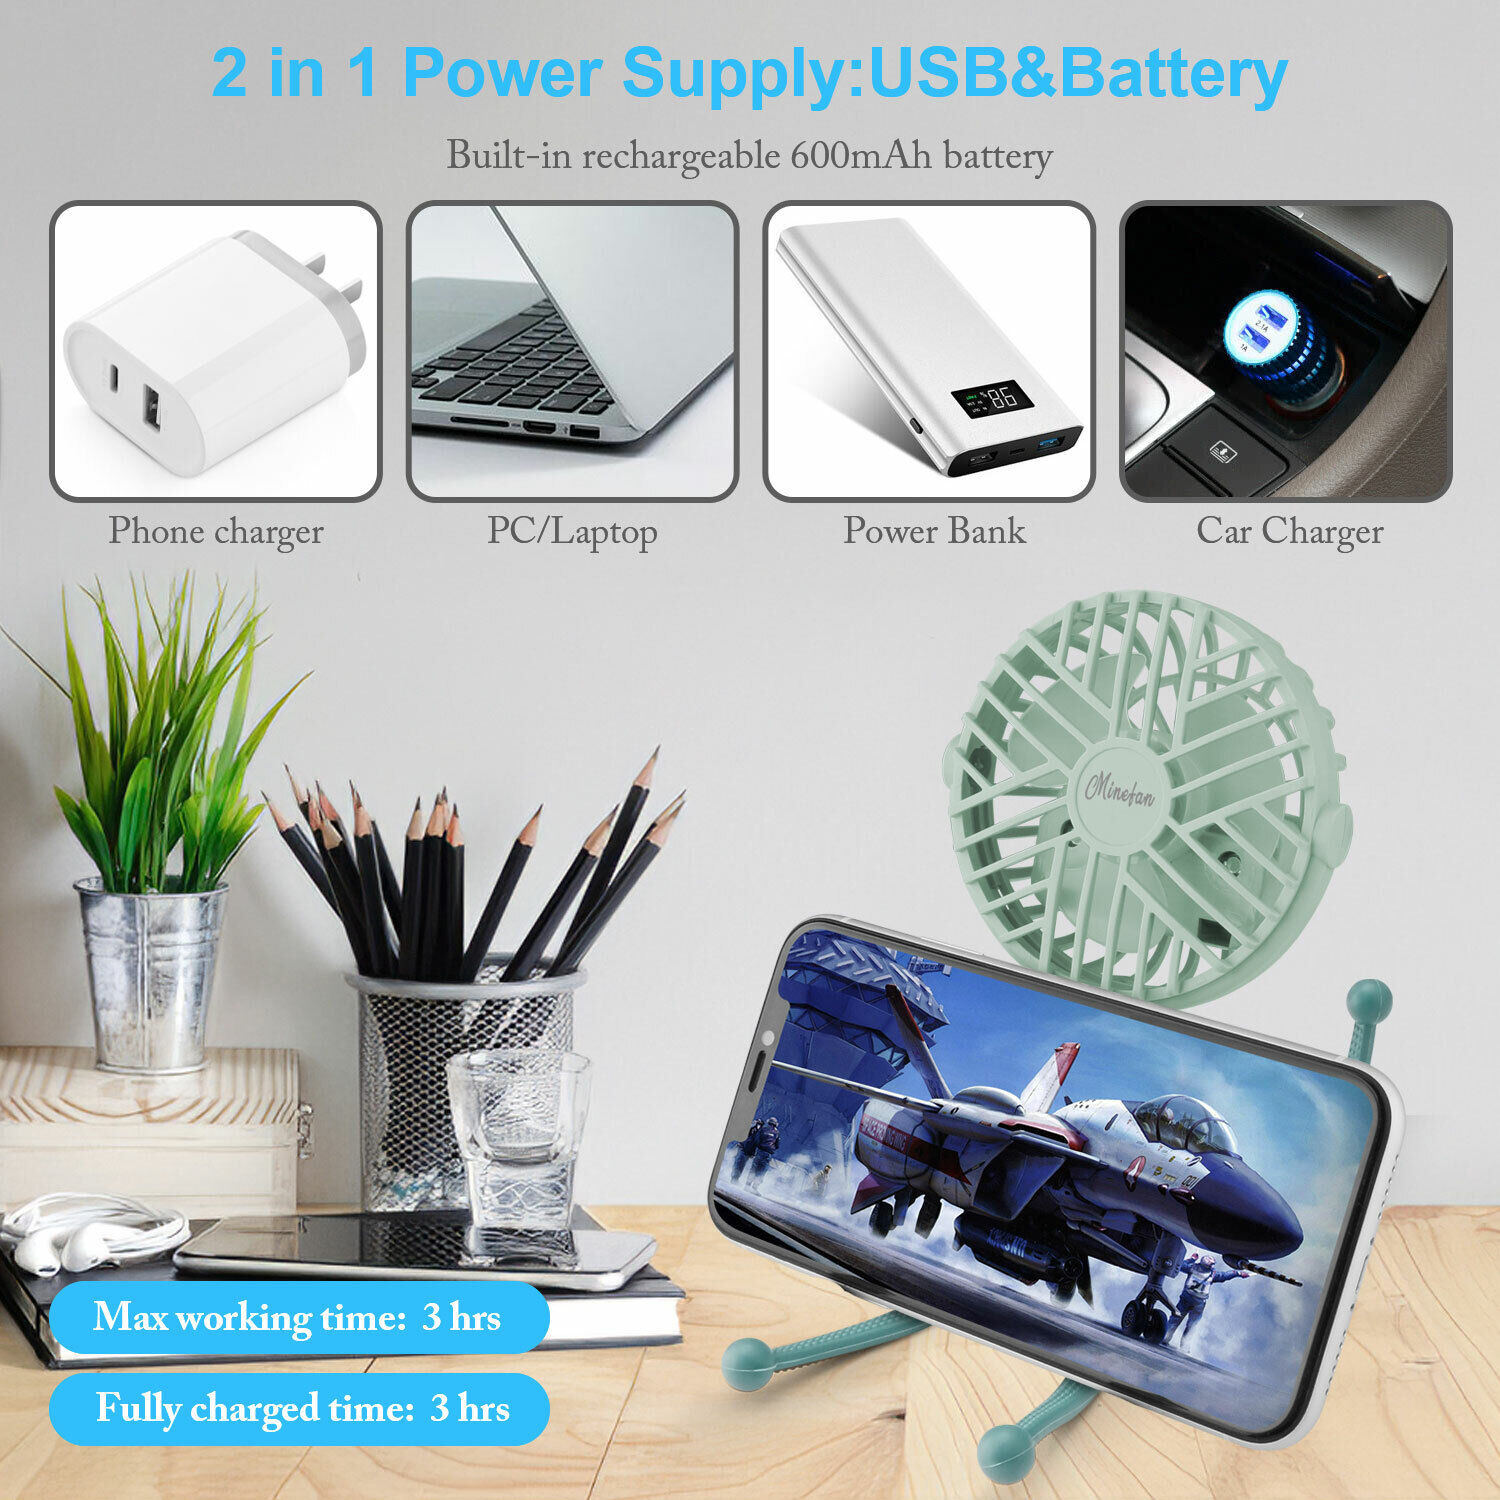 USB Rechargeable Mini Cooling Fan 3 Speeds Portable Clip On Desk Baby Stroller Heating, Cooling & Air